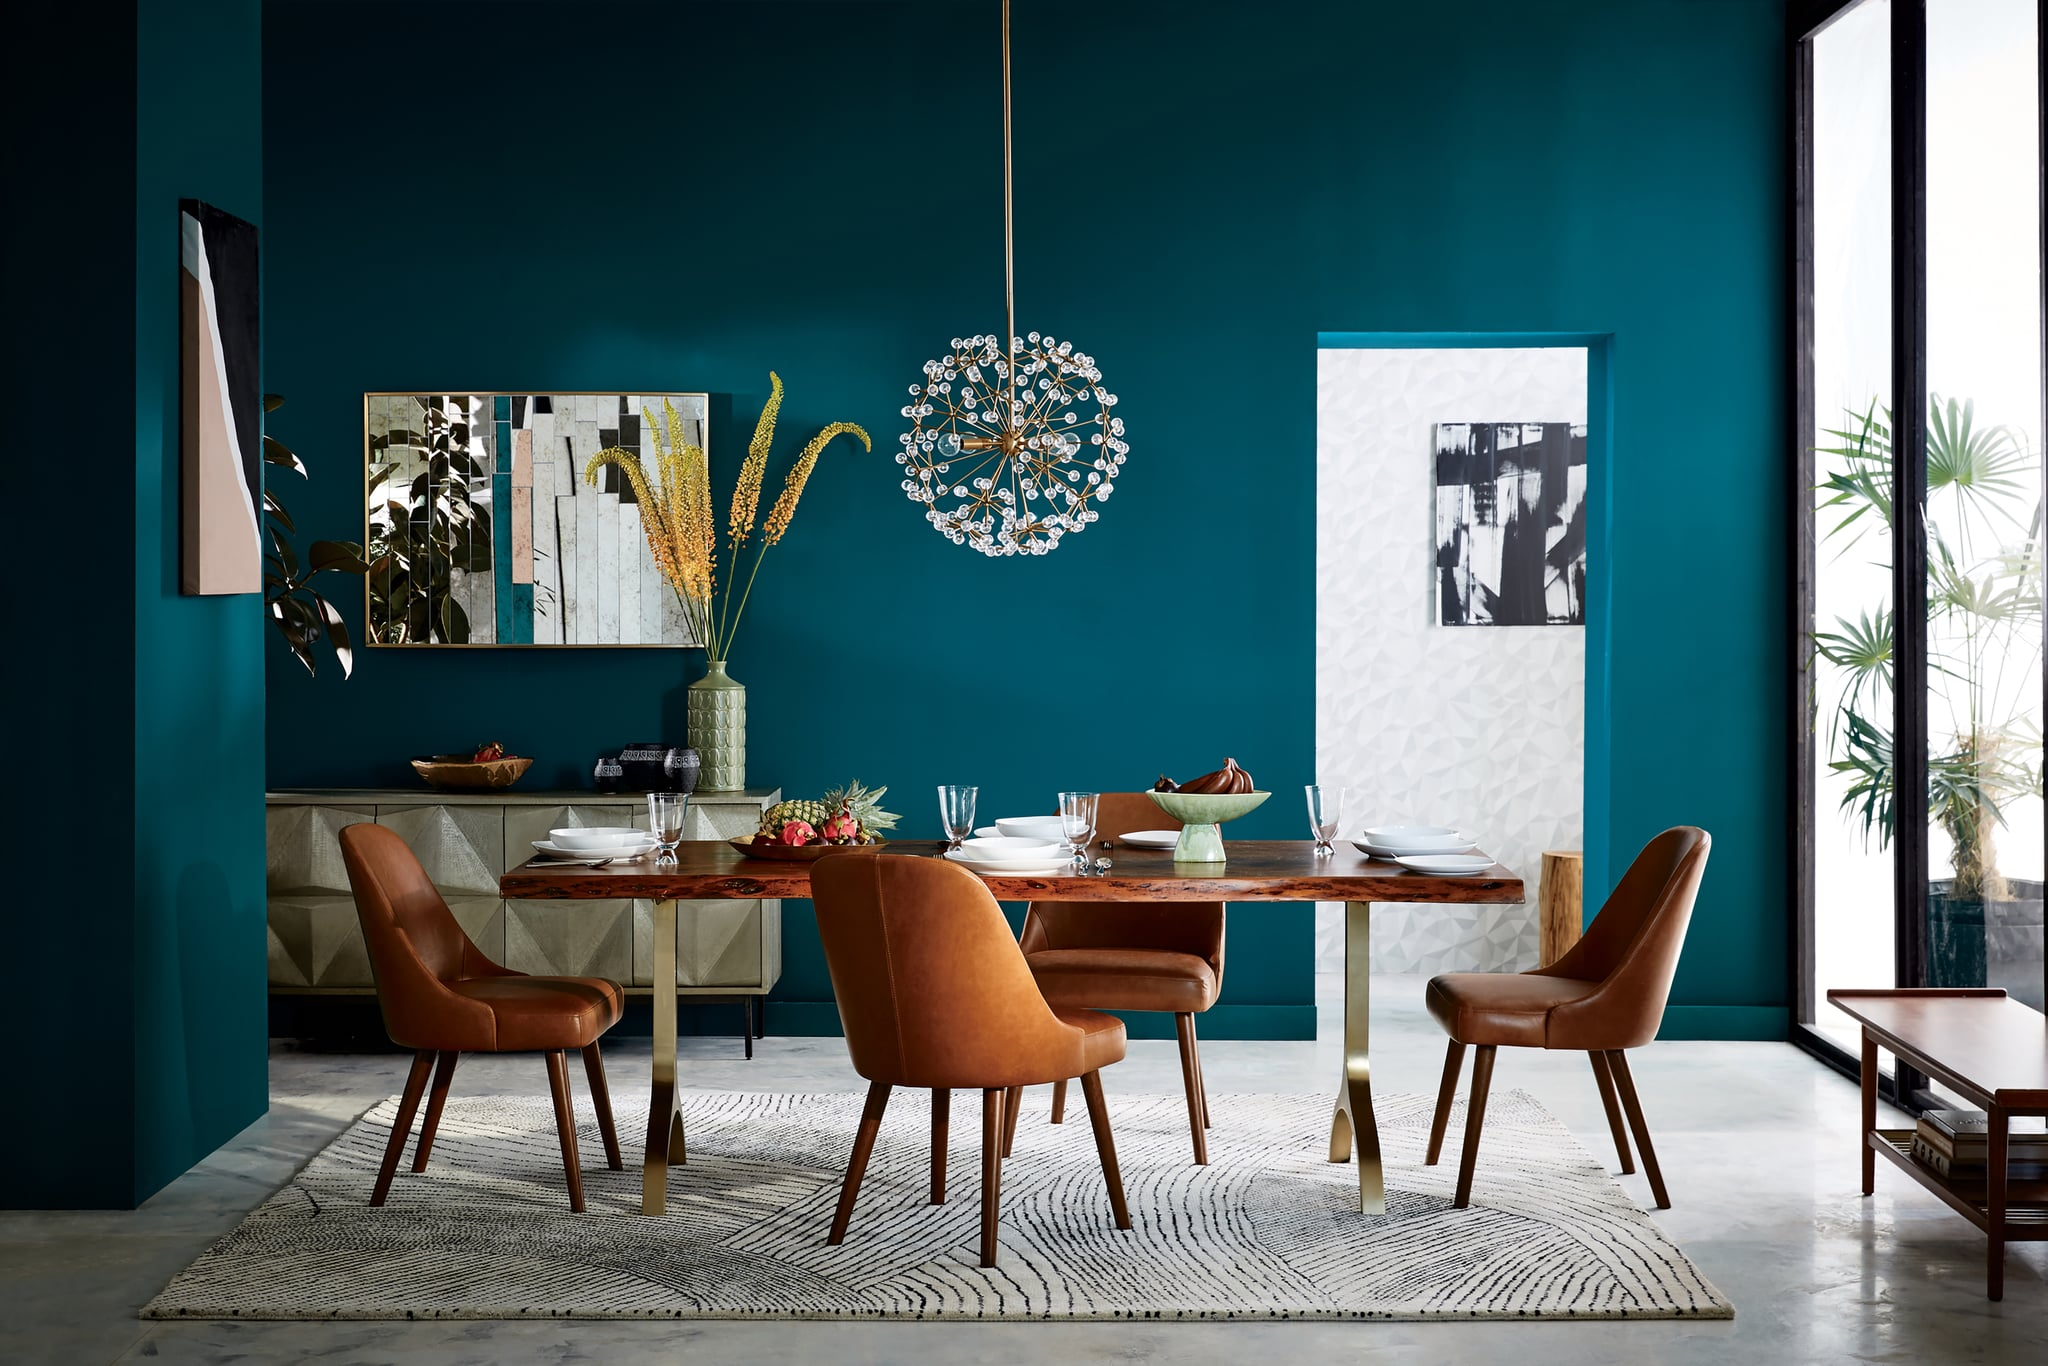 West elm collection new designs that define - Her Design Vision Is Embodied In What West Elm Is Calling The New Modern The Spring 2017 Collection Will Be The First To Embrace This New Aesthetic And